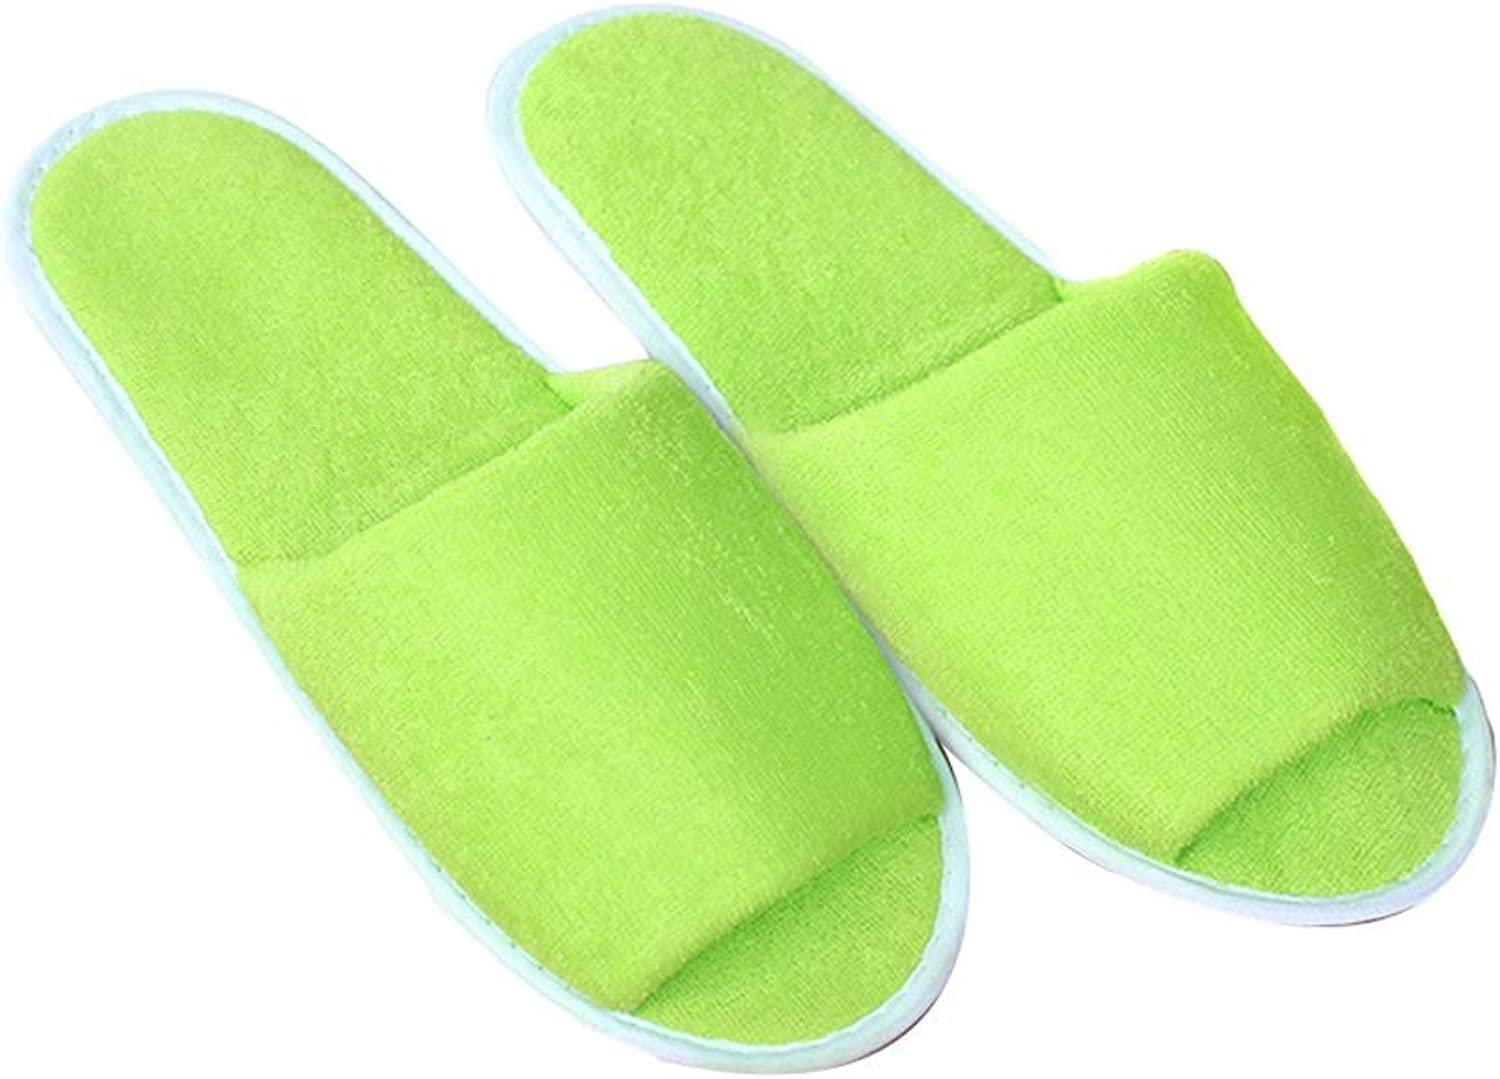 Slipper, Disposable, Folding Portable Non-Slip Lightweight shoes Household Hotel Bathroom Home Business Travel